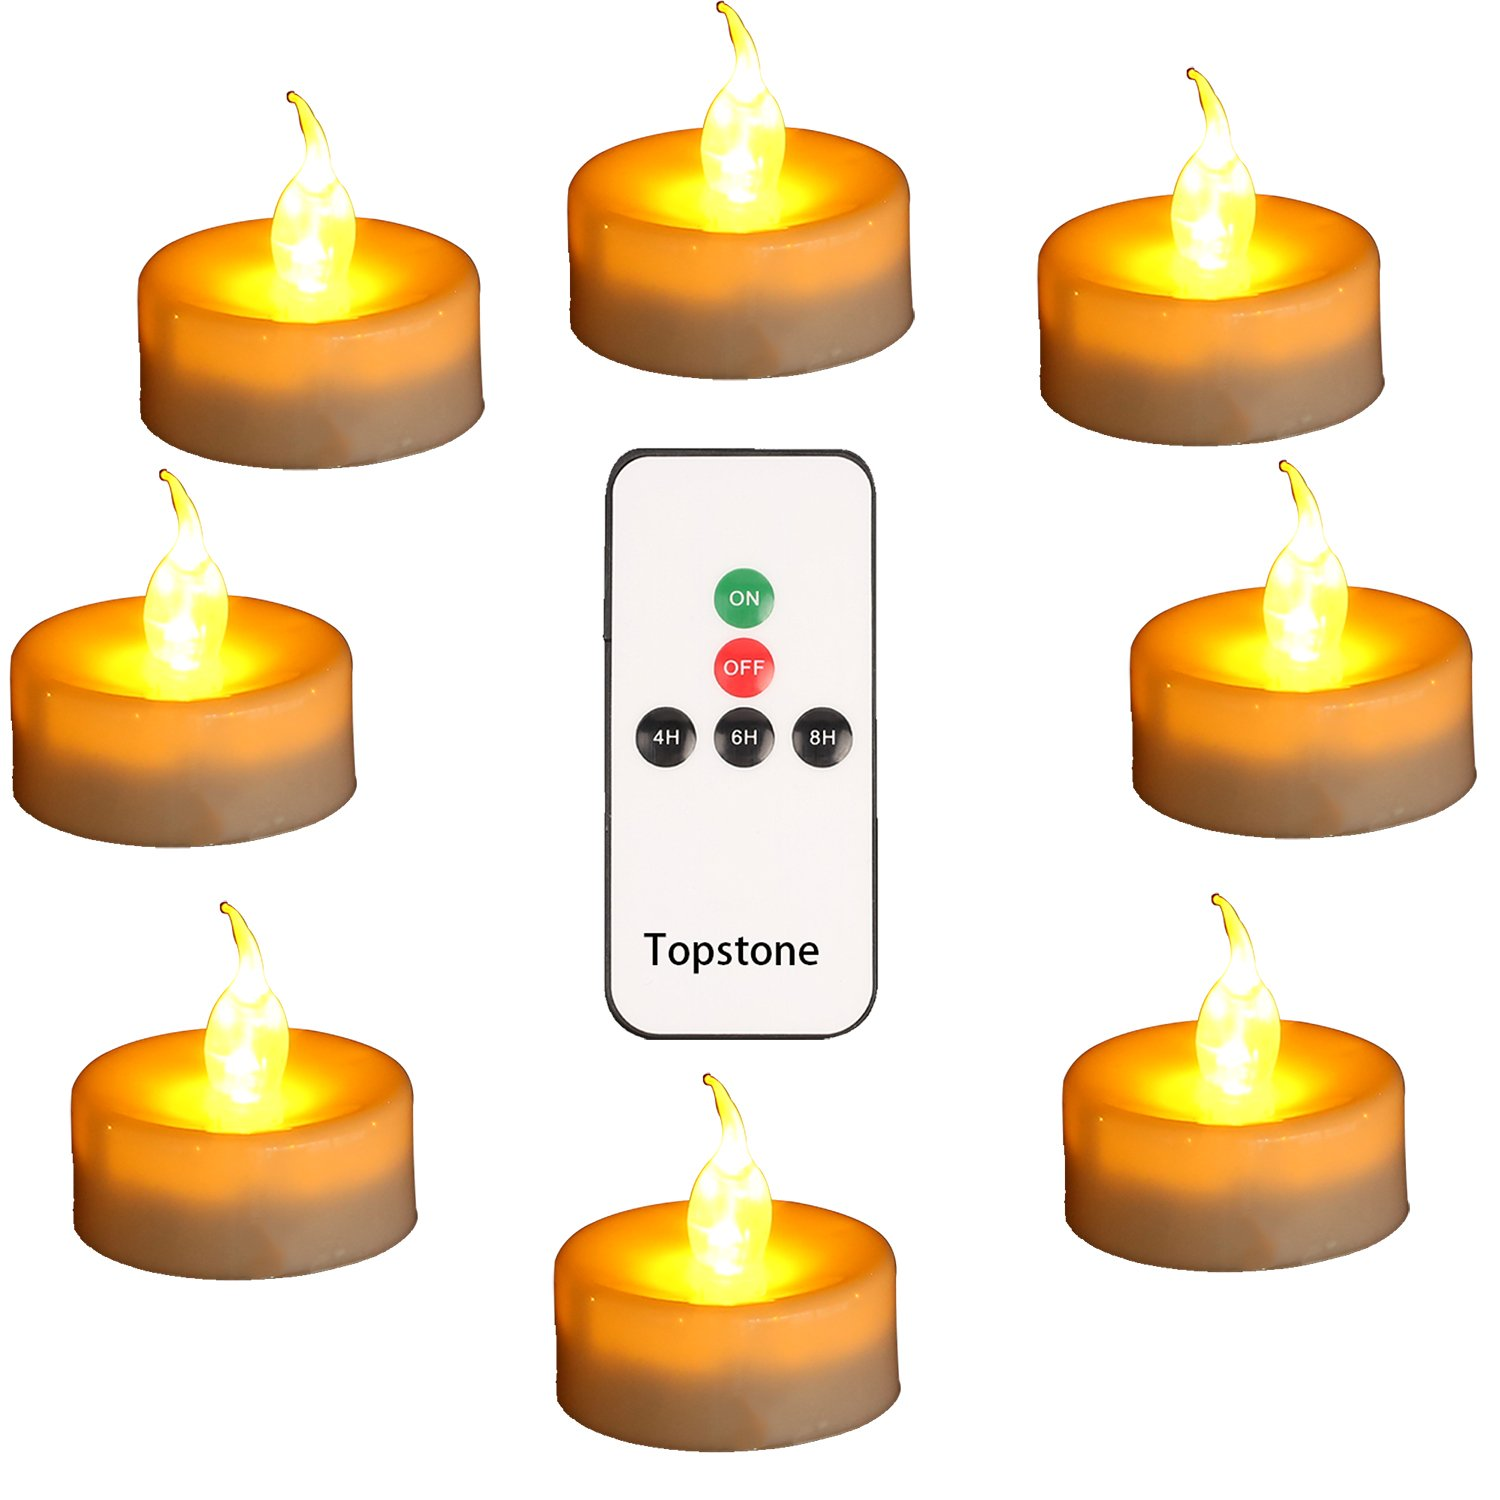 Topstone Pack of 12 Battery Powered LED Tealight Candles with 4H,6H,8H Timer and Remote Control,Amber Flickering Flame,Flameless Candles,Fake Candle for Parties,Wedding,Home Decor